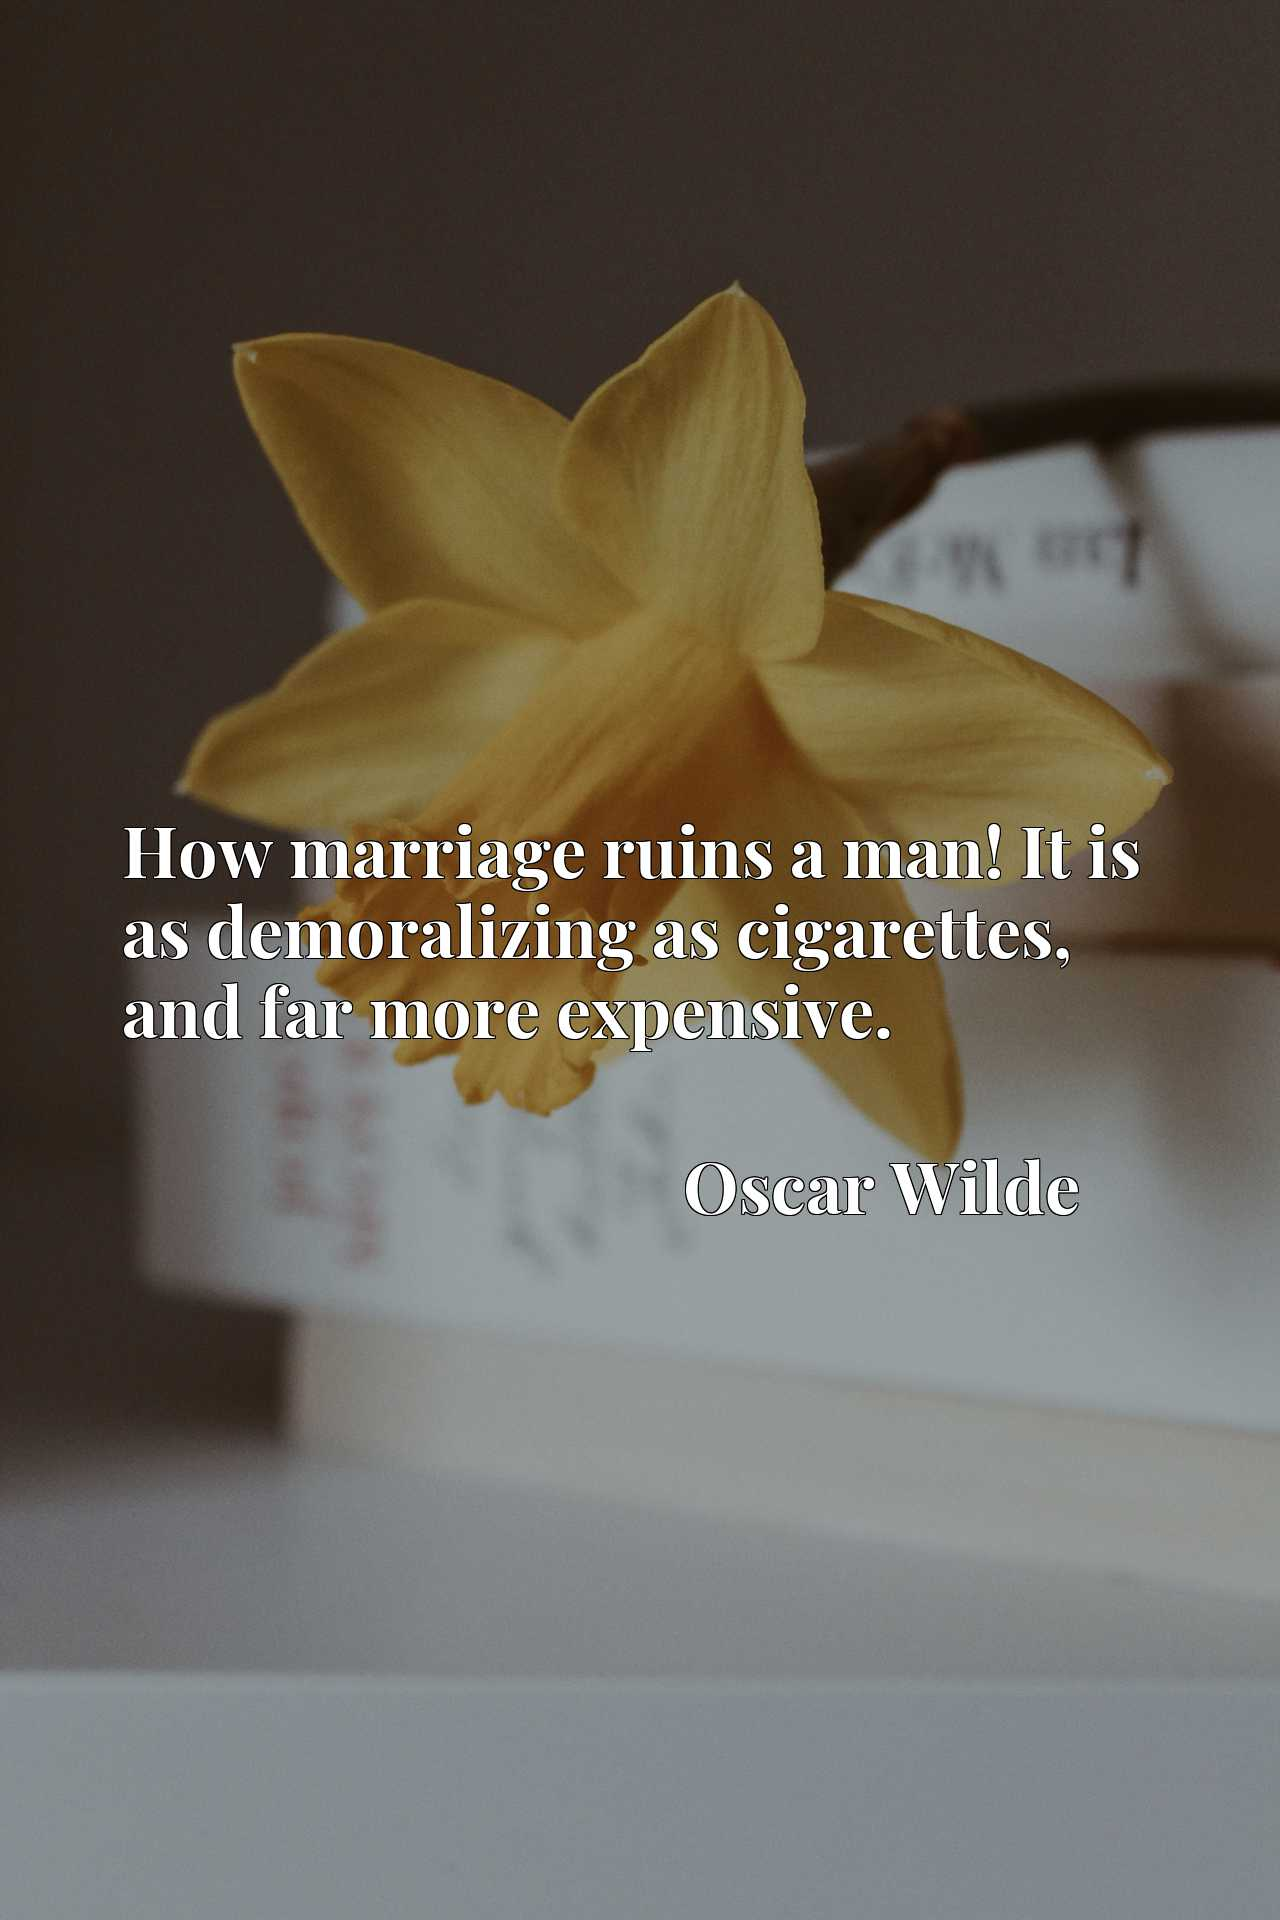 Quote Picture :How marriage ruins a man! It is as demoralizing as cigarettes, and far more expensive.